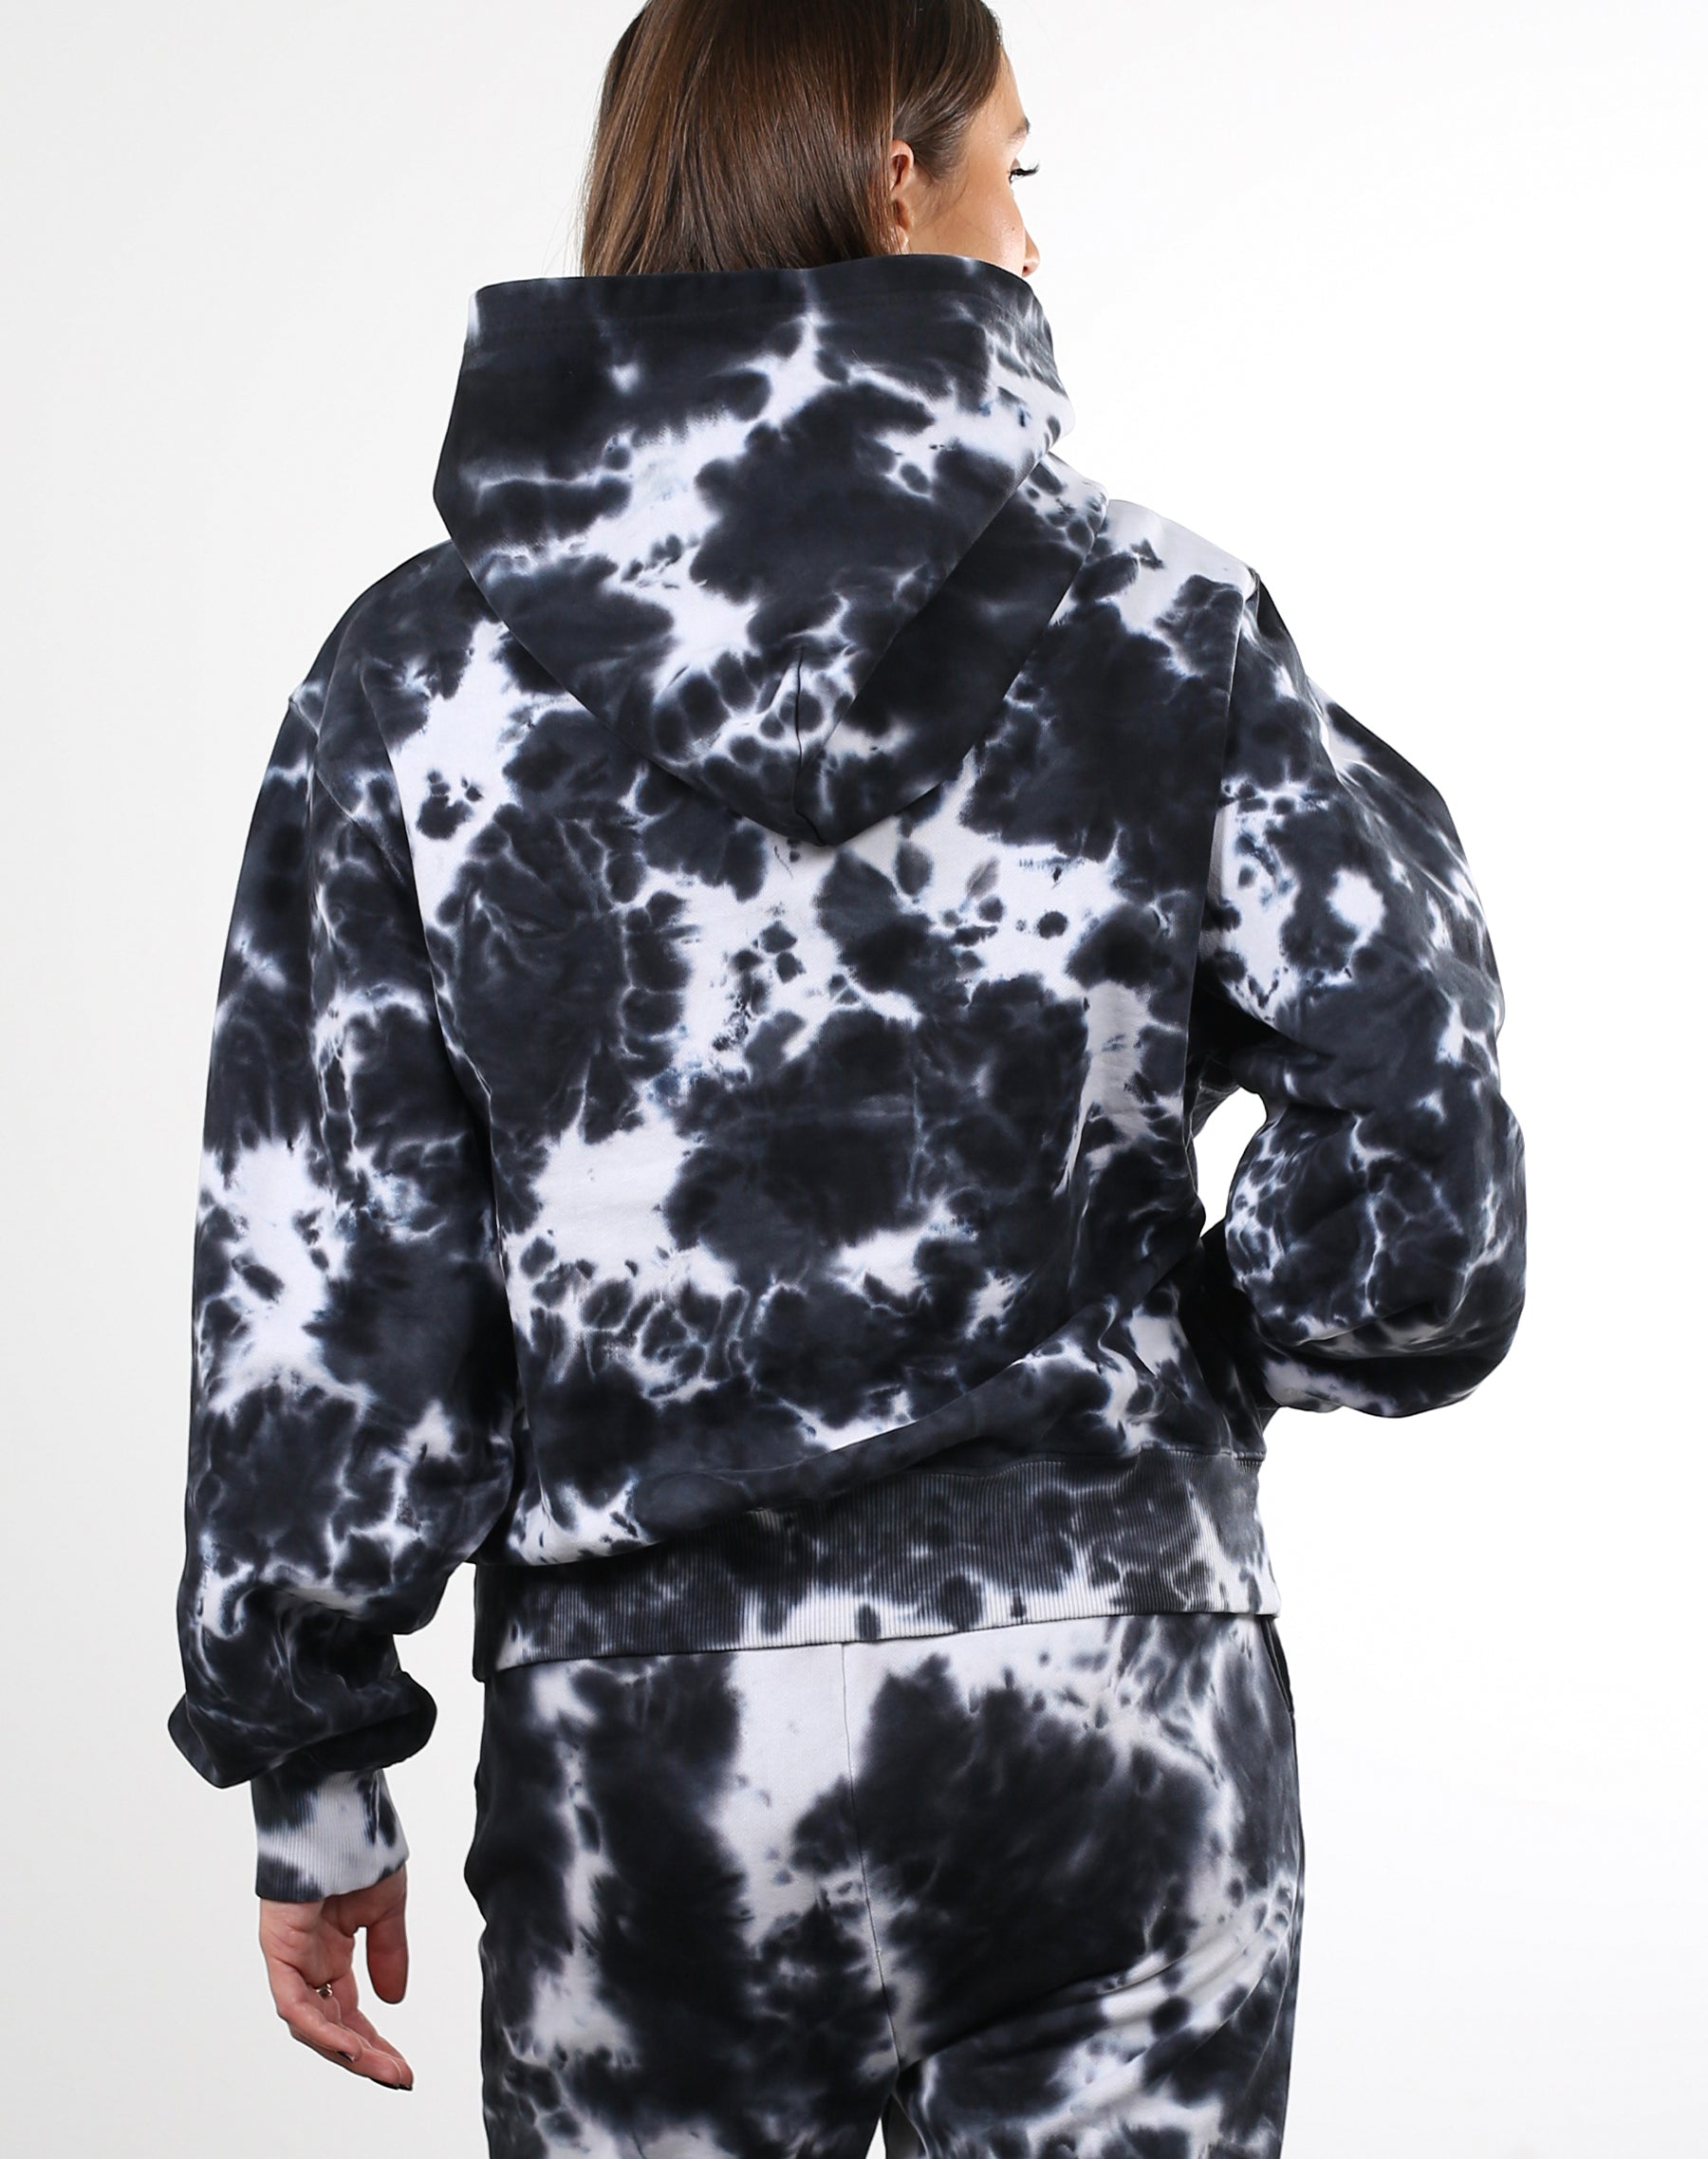 This is a photo of the back of a model wearing the Best Friend Hoodie in Black Marble Dye by Brunette the Label.